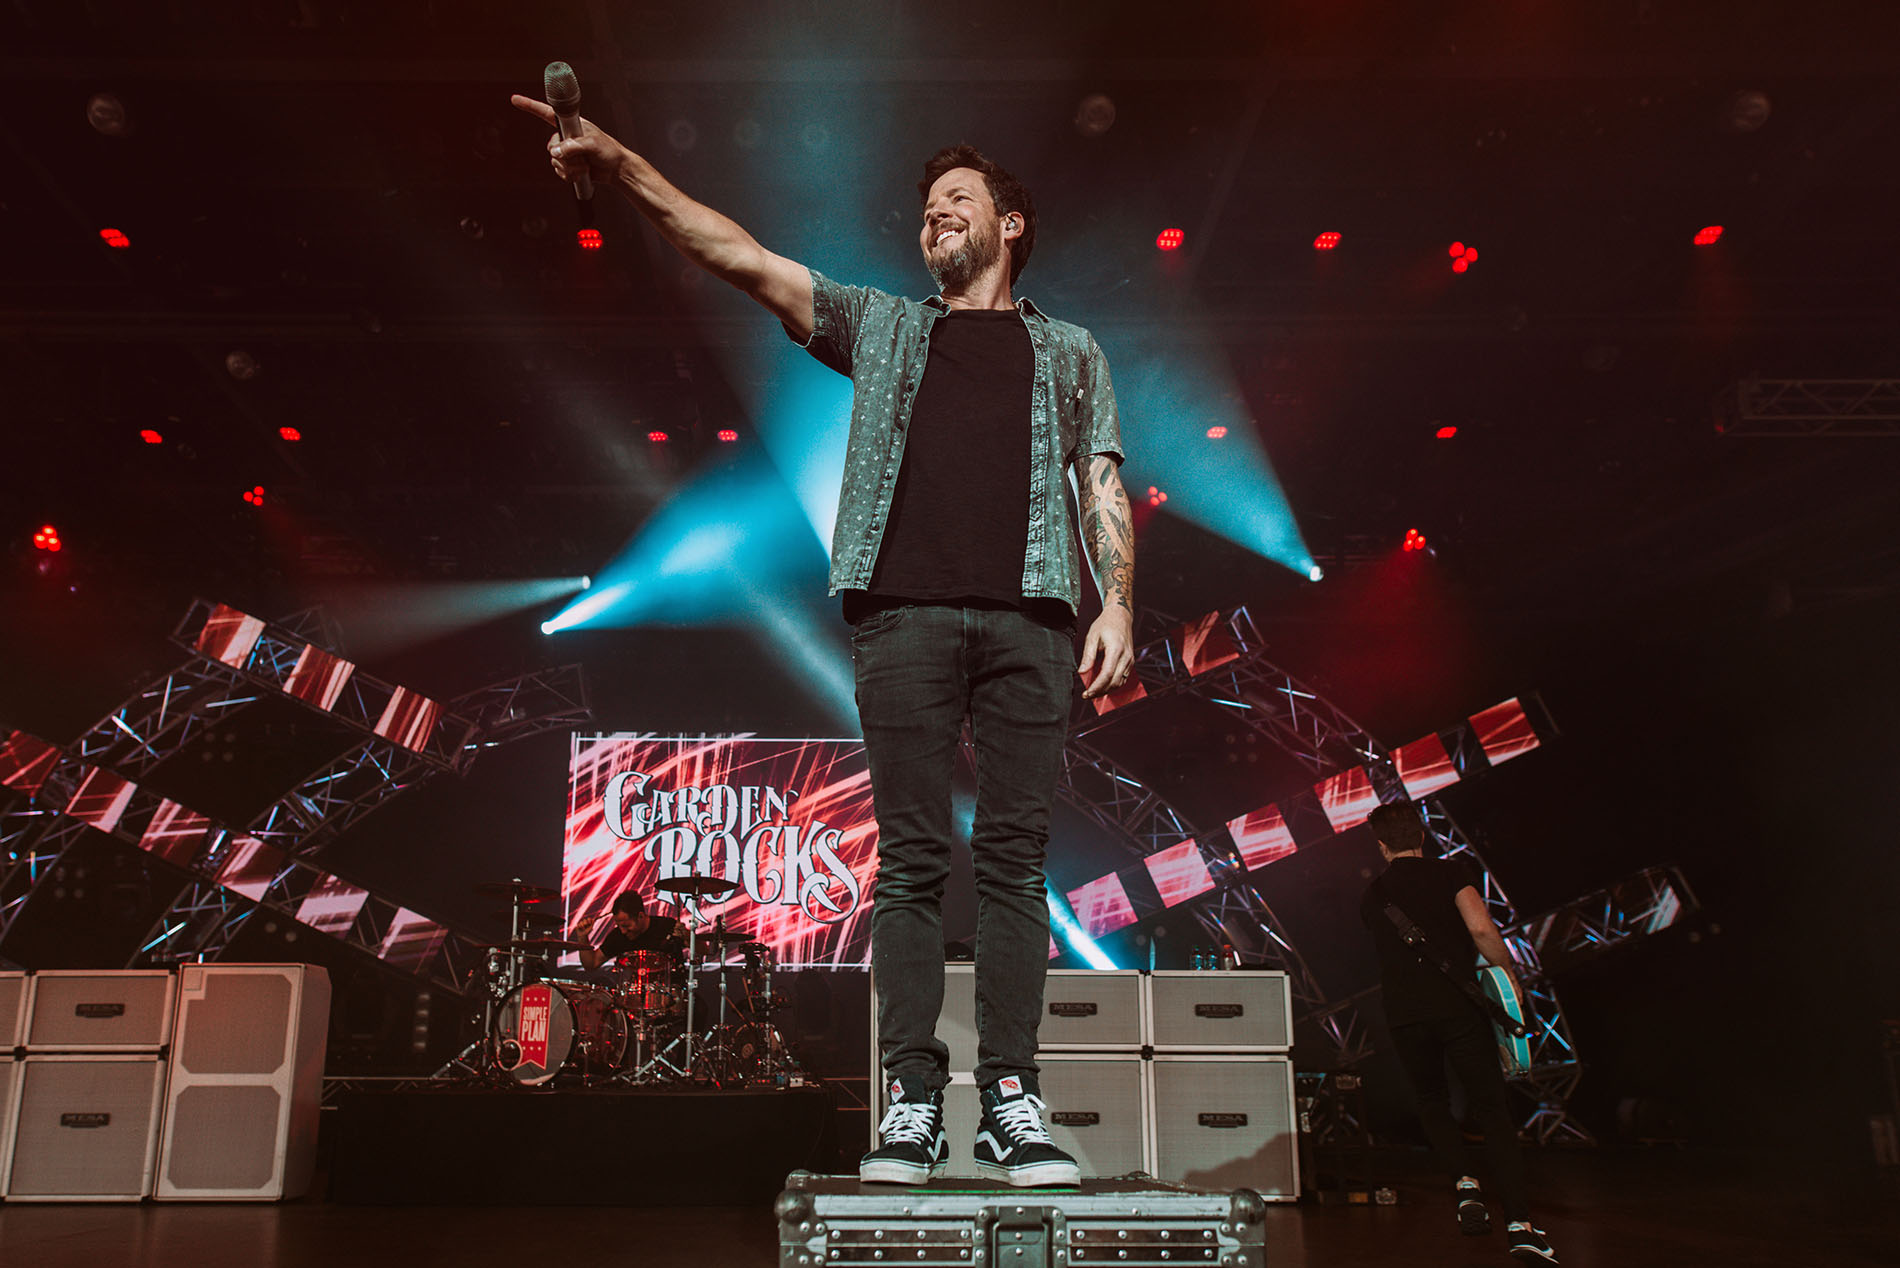 simple plan pierre bouvier crowd disney garden rocks band concert rock photo photography image